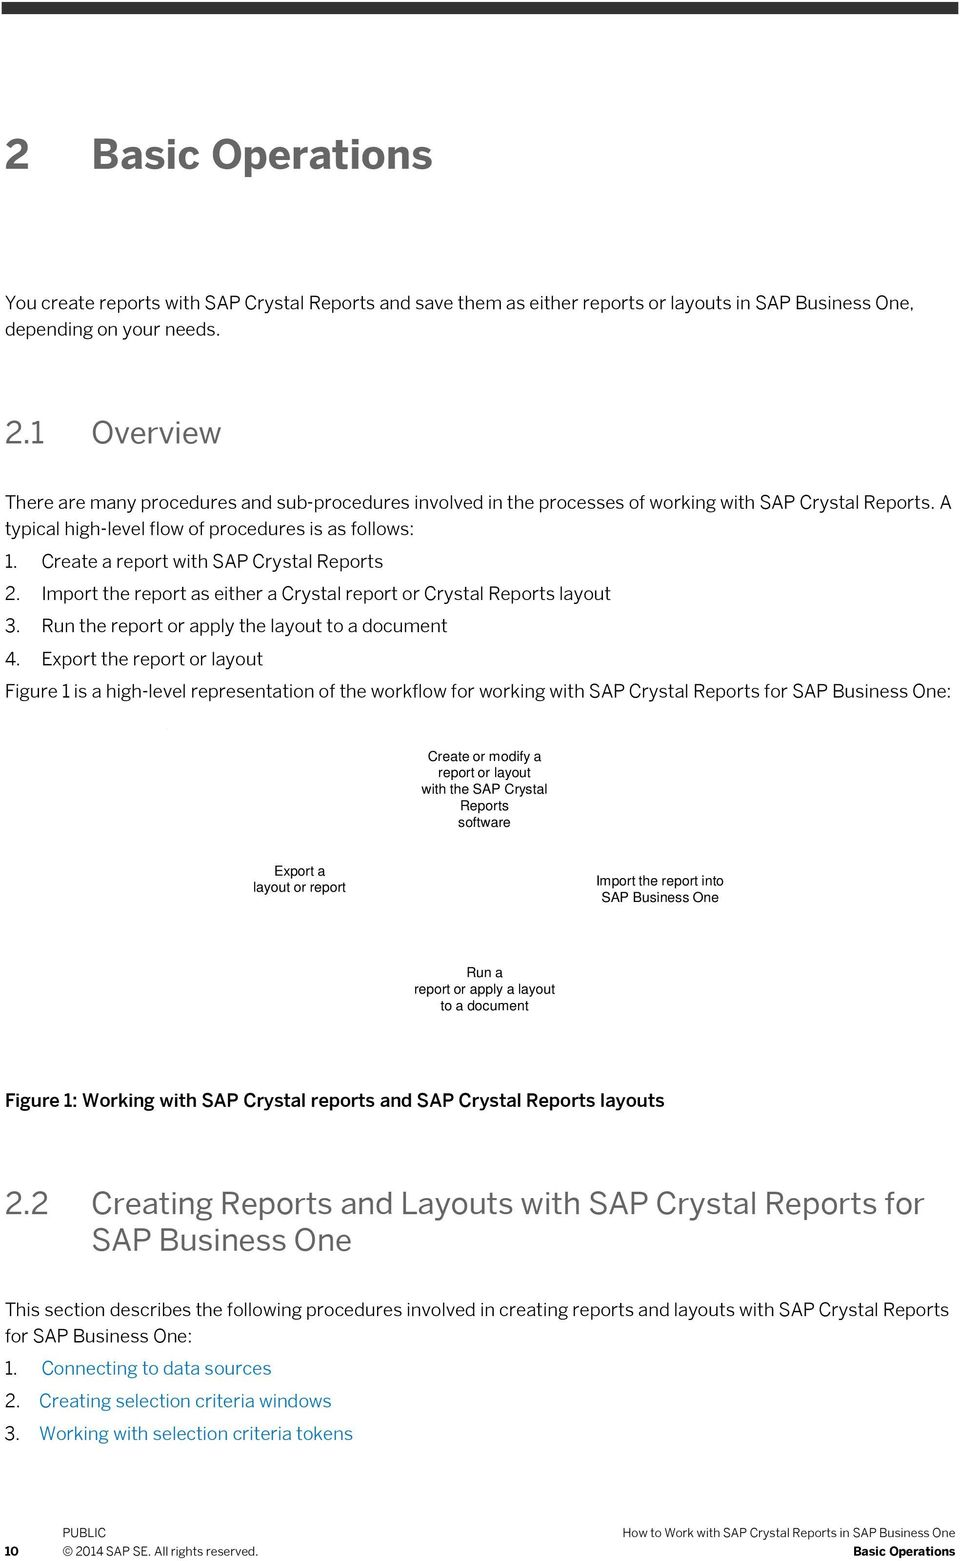 create a report with sap crystal reports 2 import the report as either a crystal